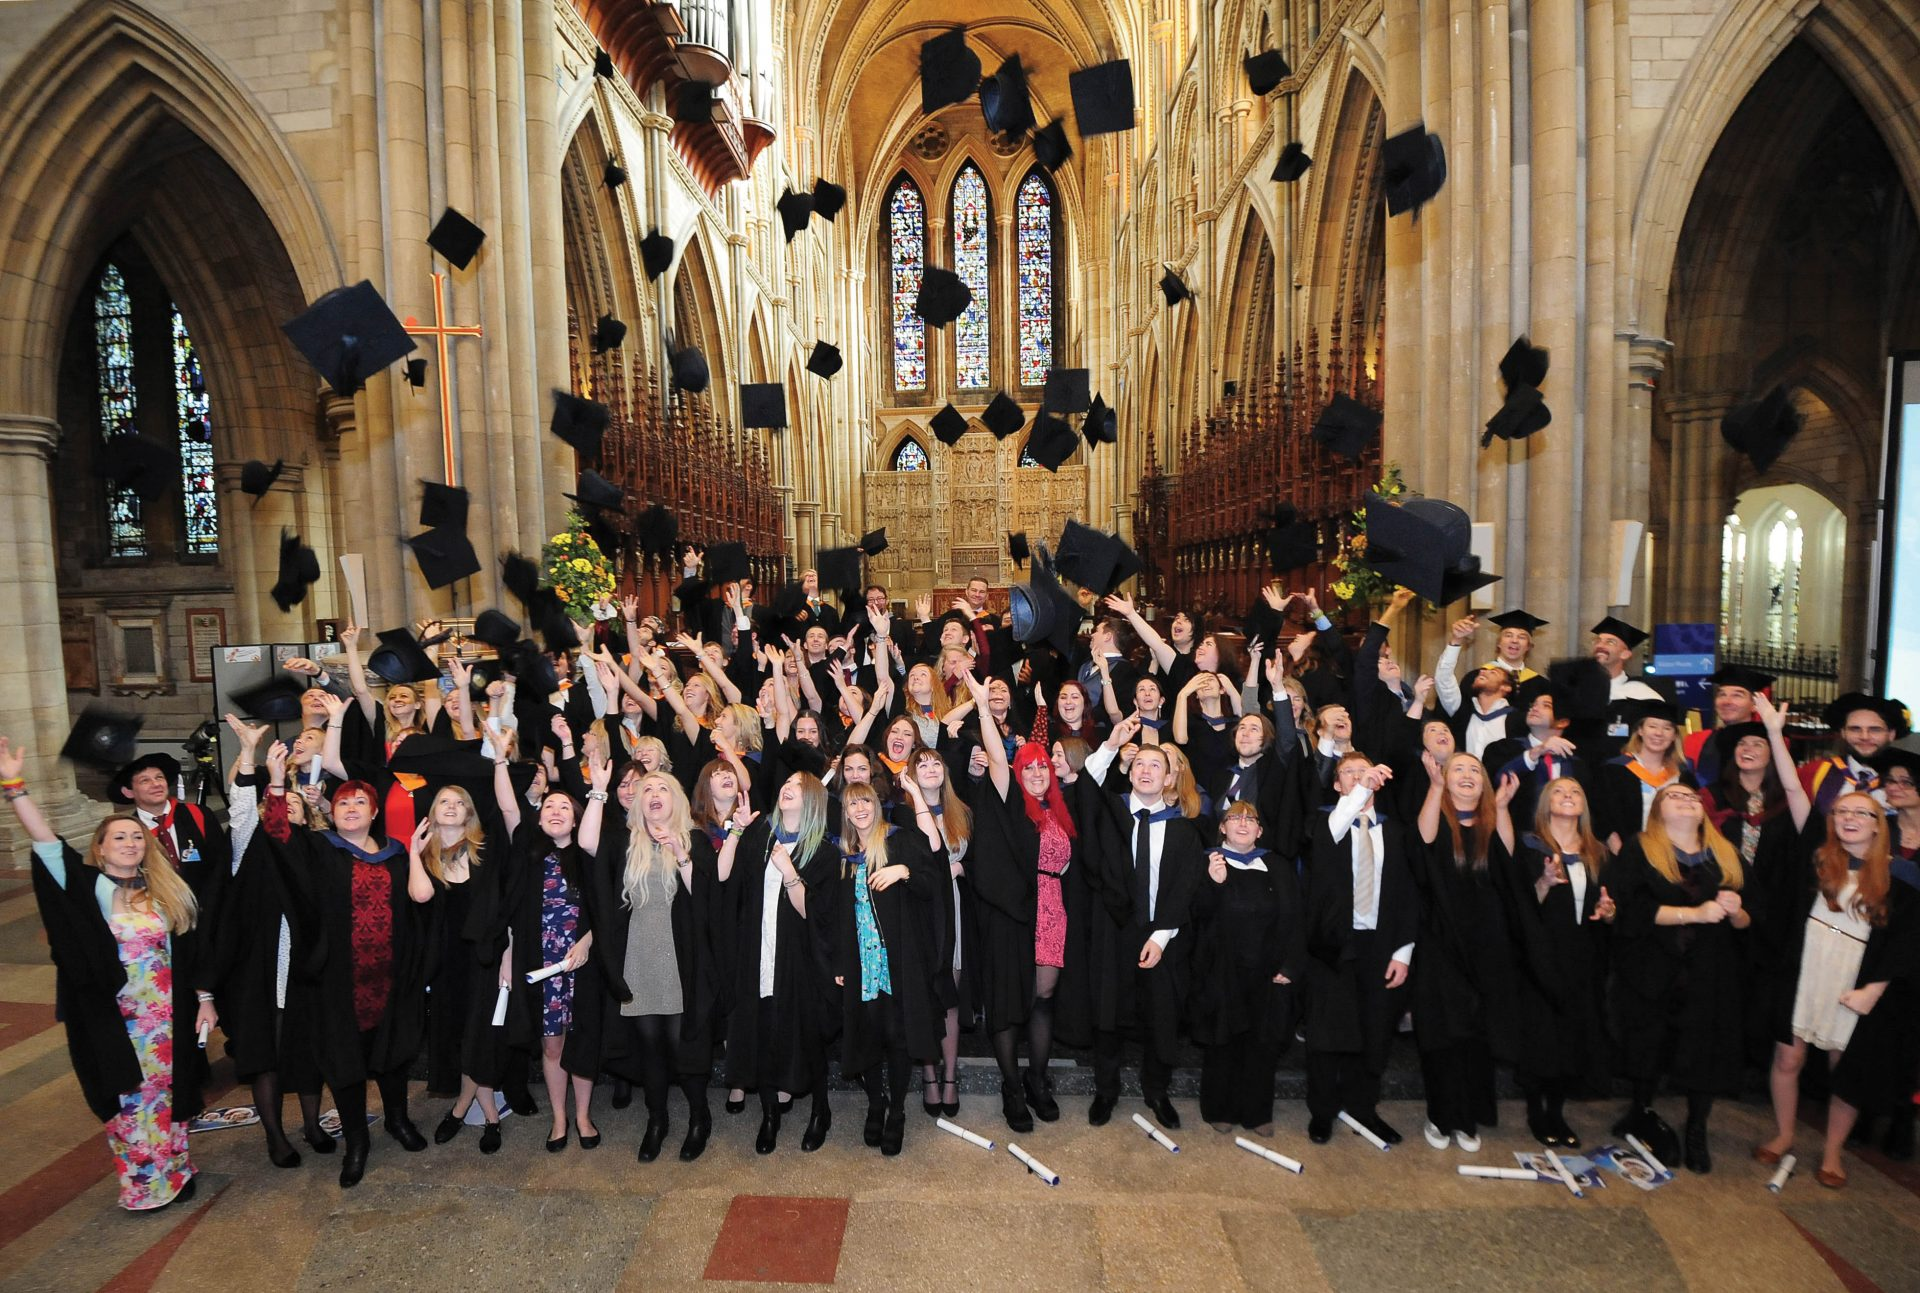 Students graduating at Truro cathedral throwing mortar boards in the air